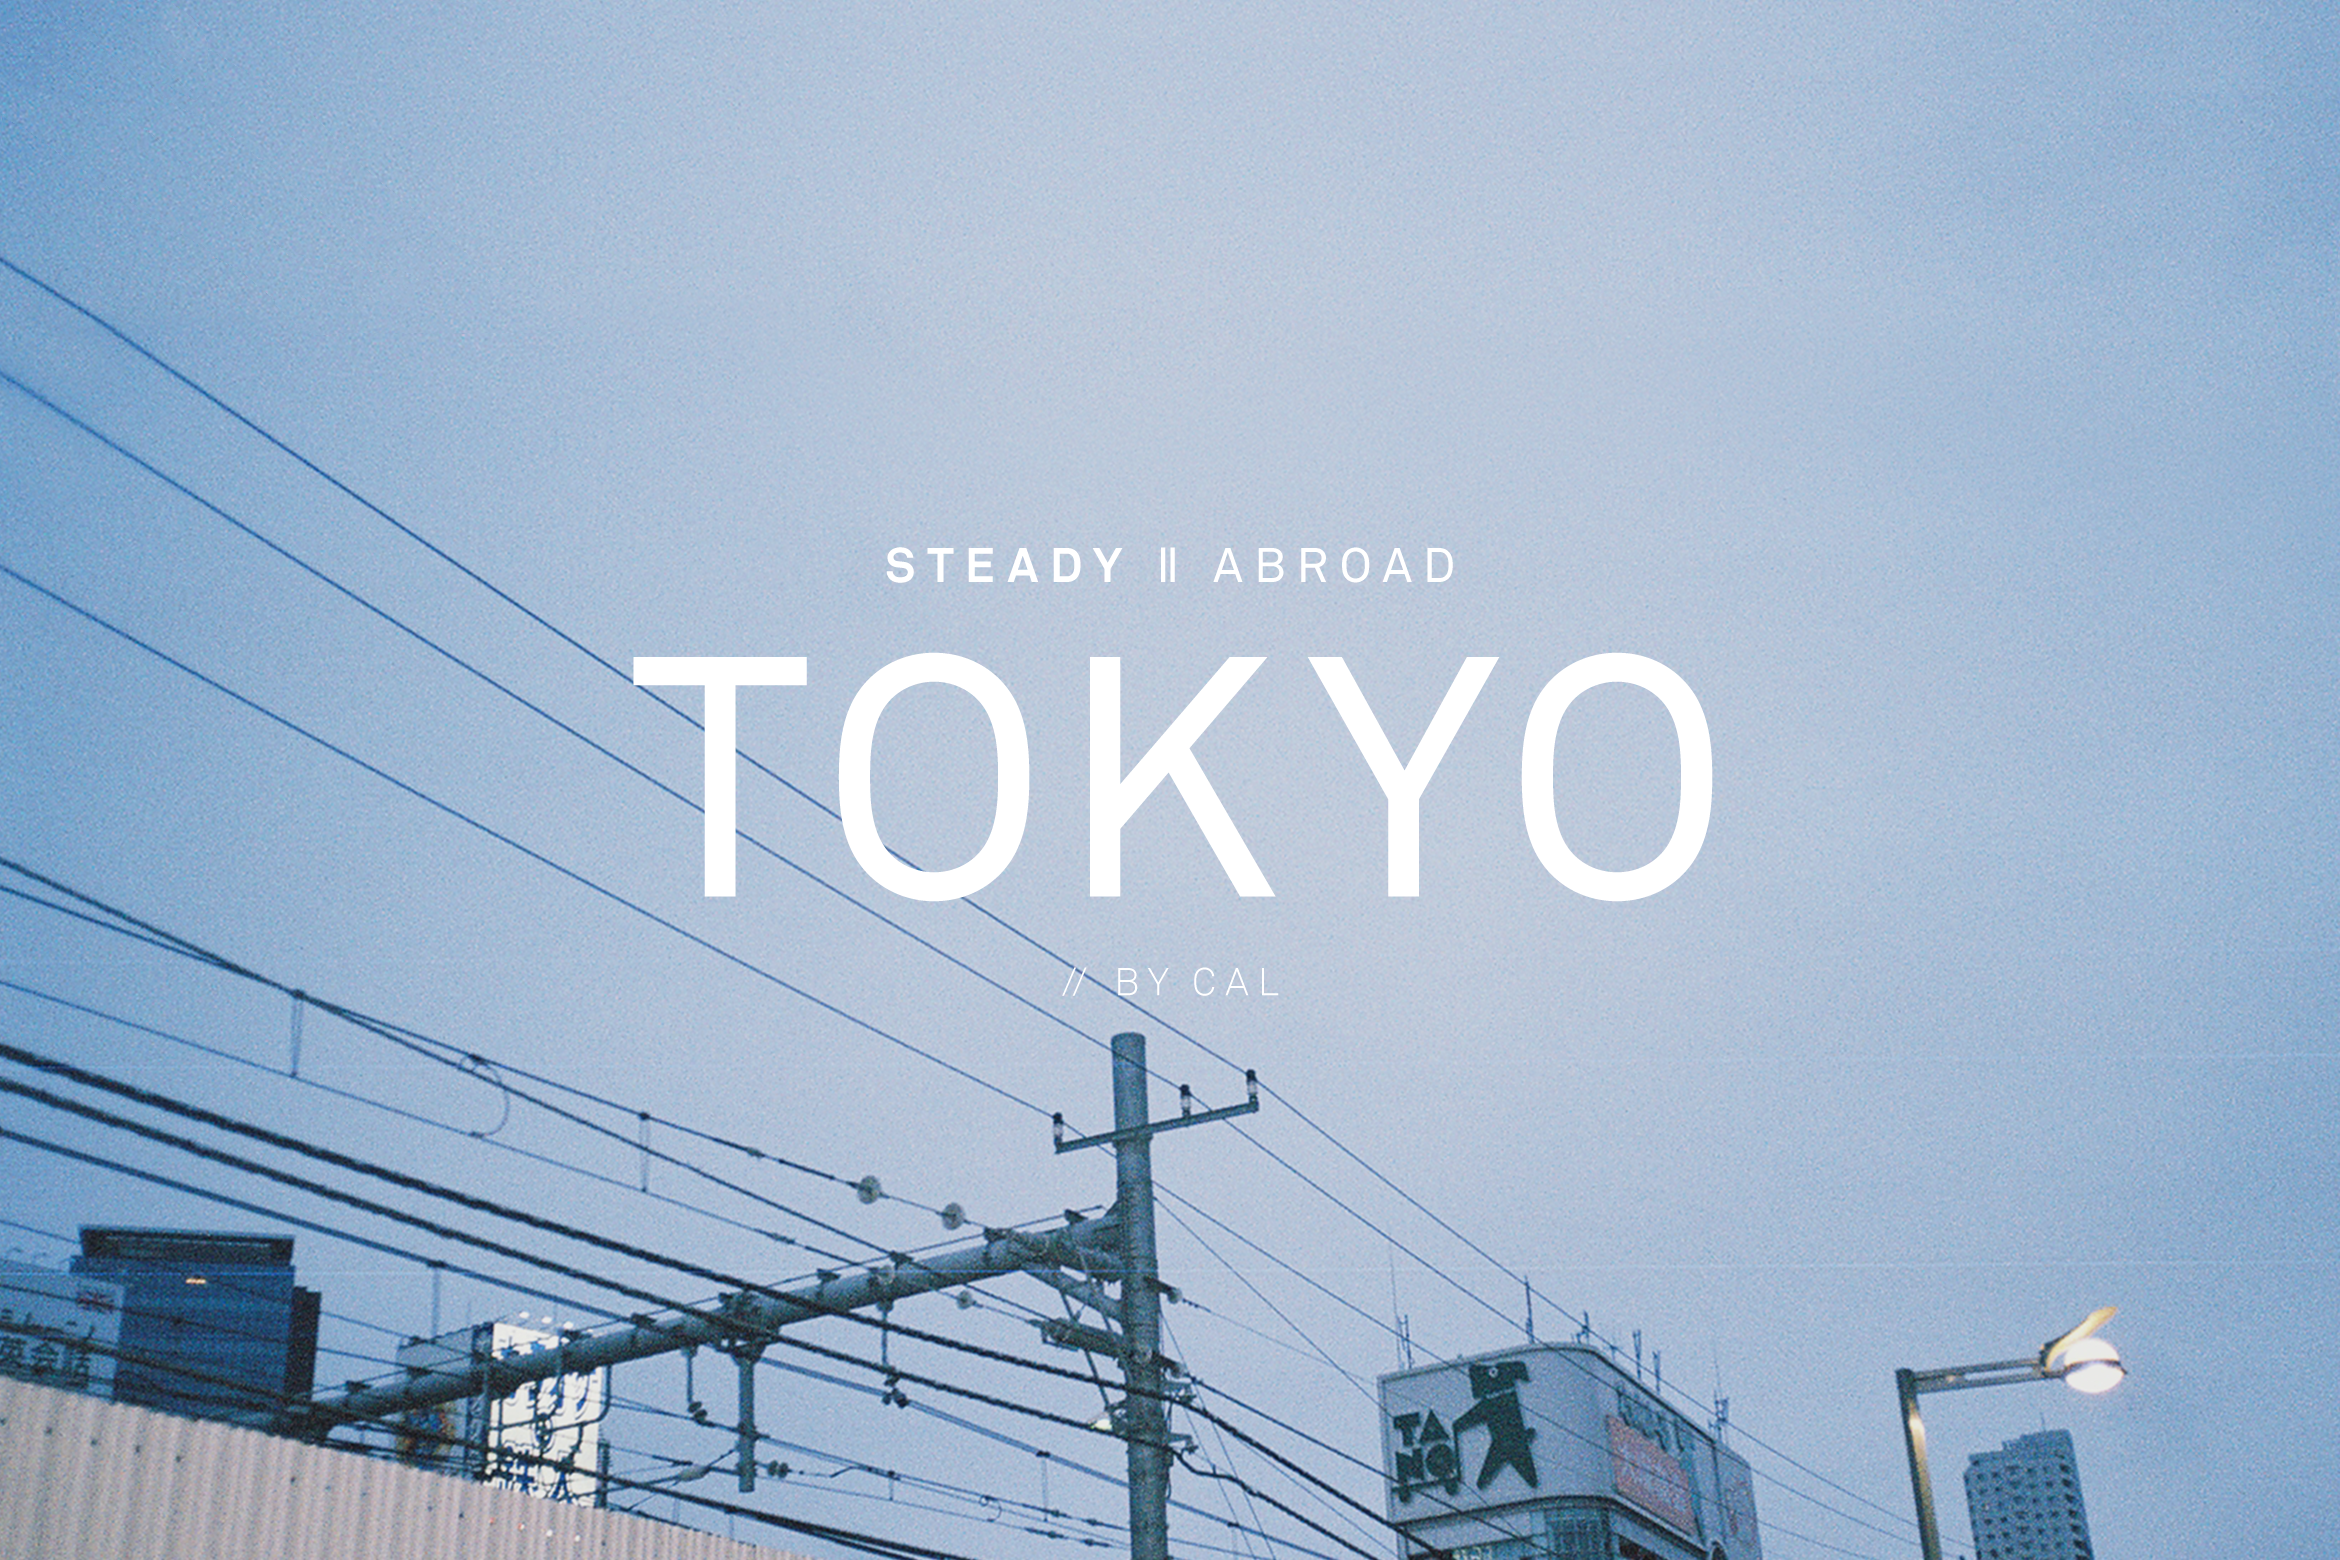 STEADY ABROAD: TOKYO // BY CAL